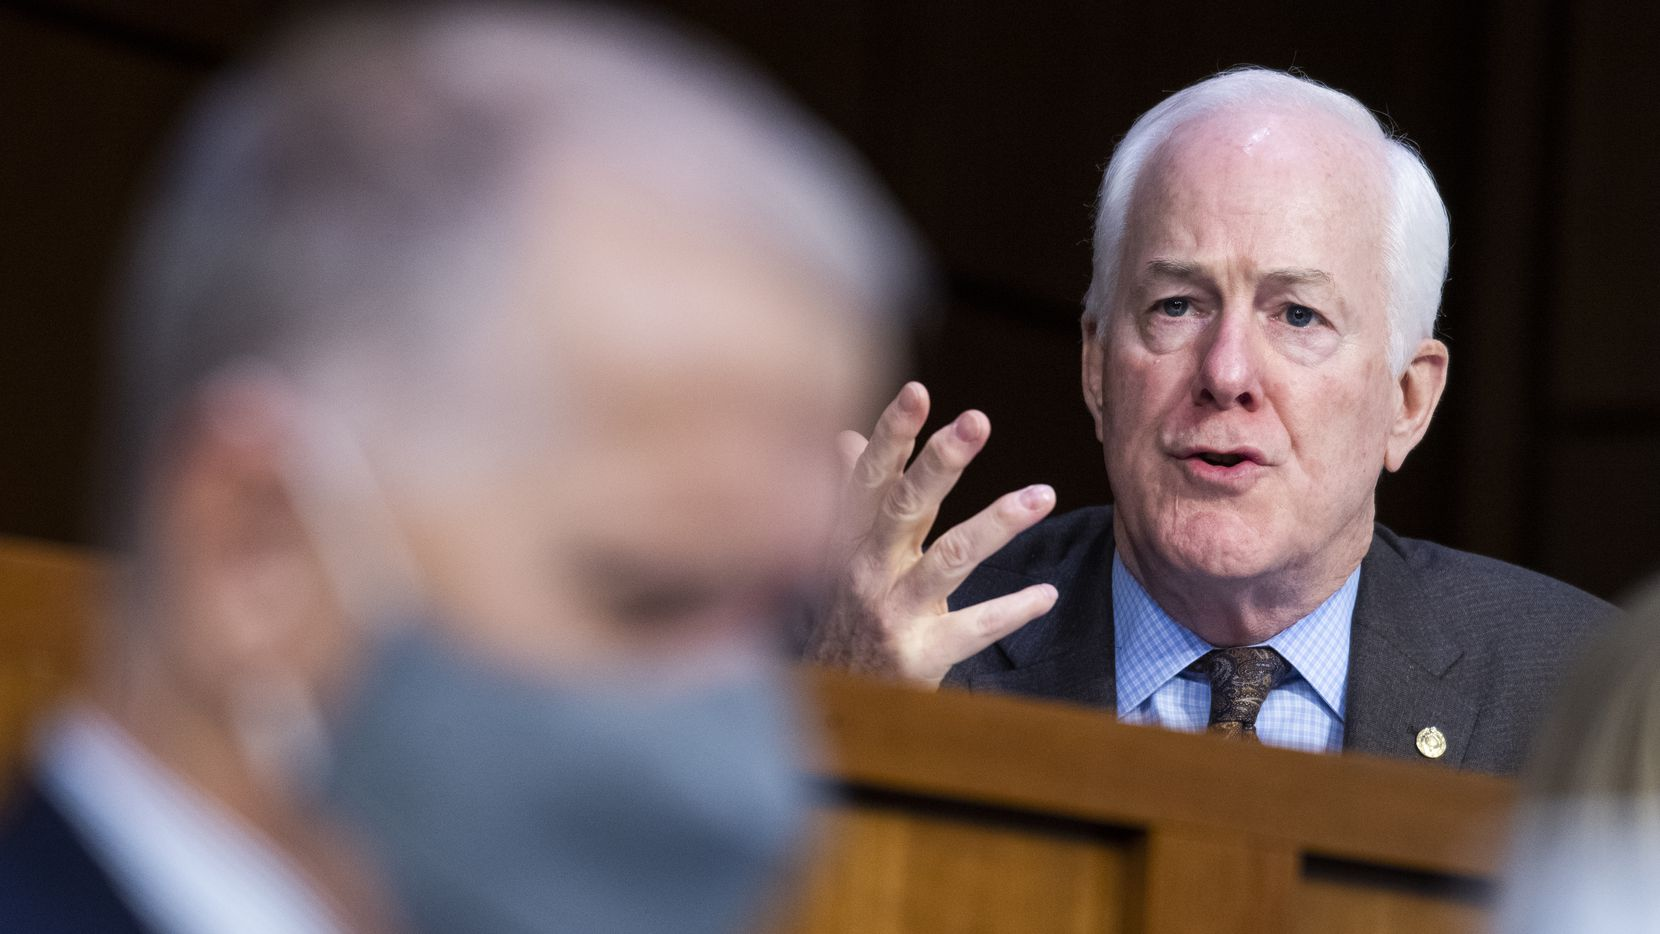 Sen. John Cornyn, R-Texas, right, speaks as Thom Tillis, R-N.C., listens during a confirmation hearing for Supreme Court nominee Amy Coney Barrett before the Senate Judiciary Committee, Tuesday, Oct. 13, 2020, on Capitol Hill in Washington.